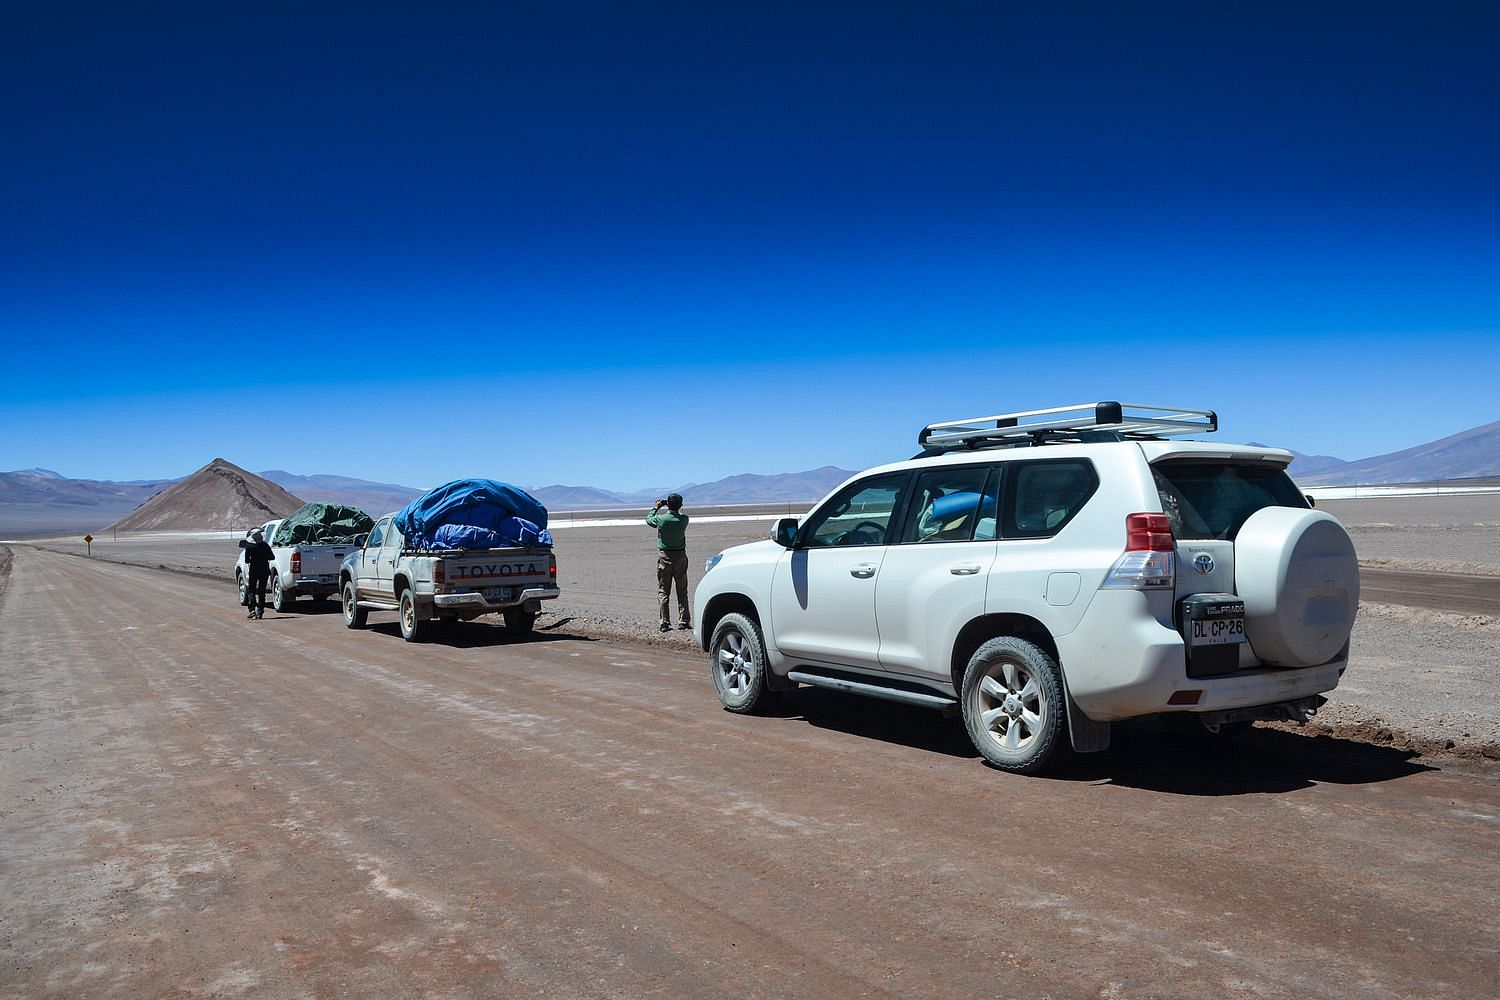 Team members and 4WD Vehicles on the way to the Ojos del Salado near Copiapo - Chile Montaña Expedition 2017.